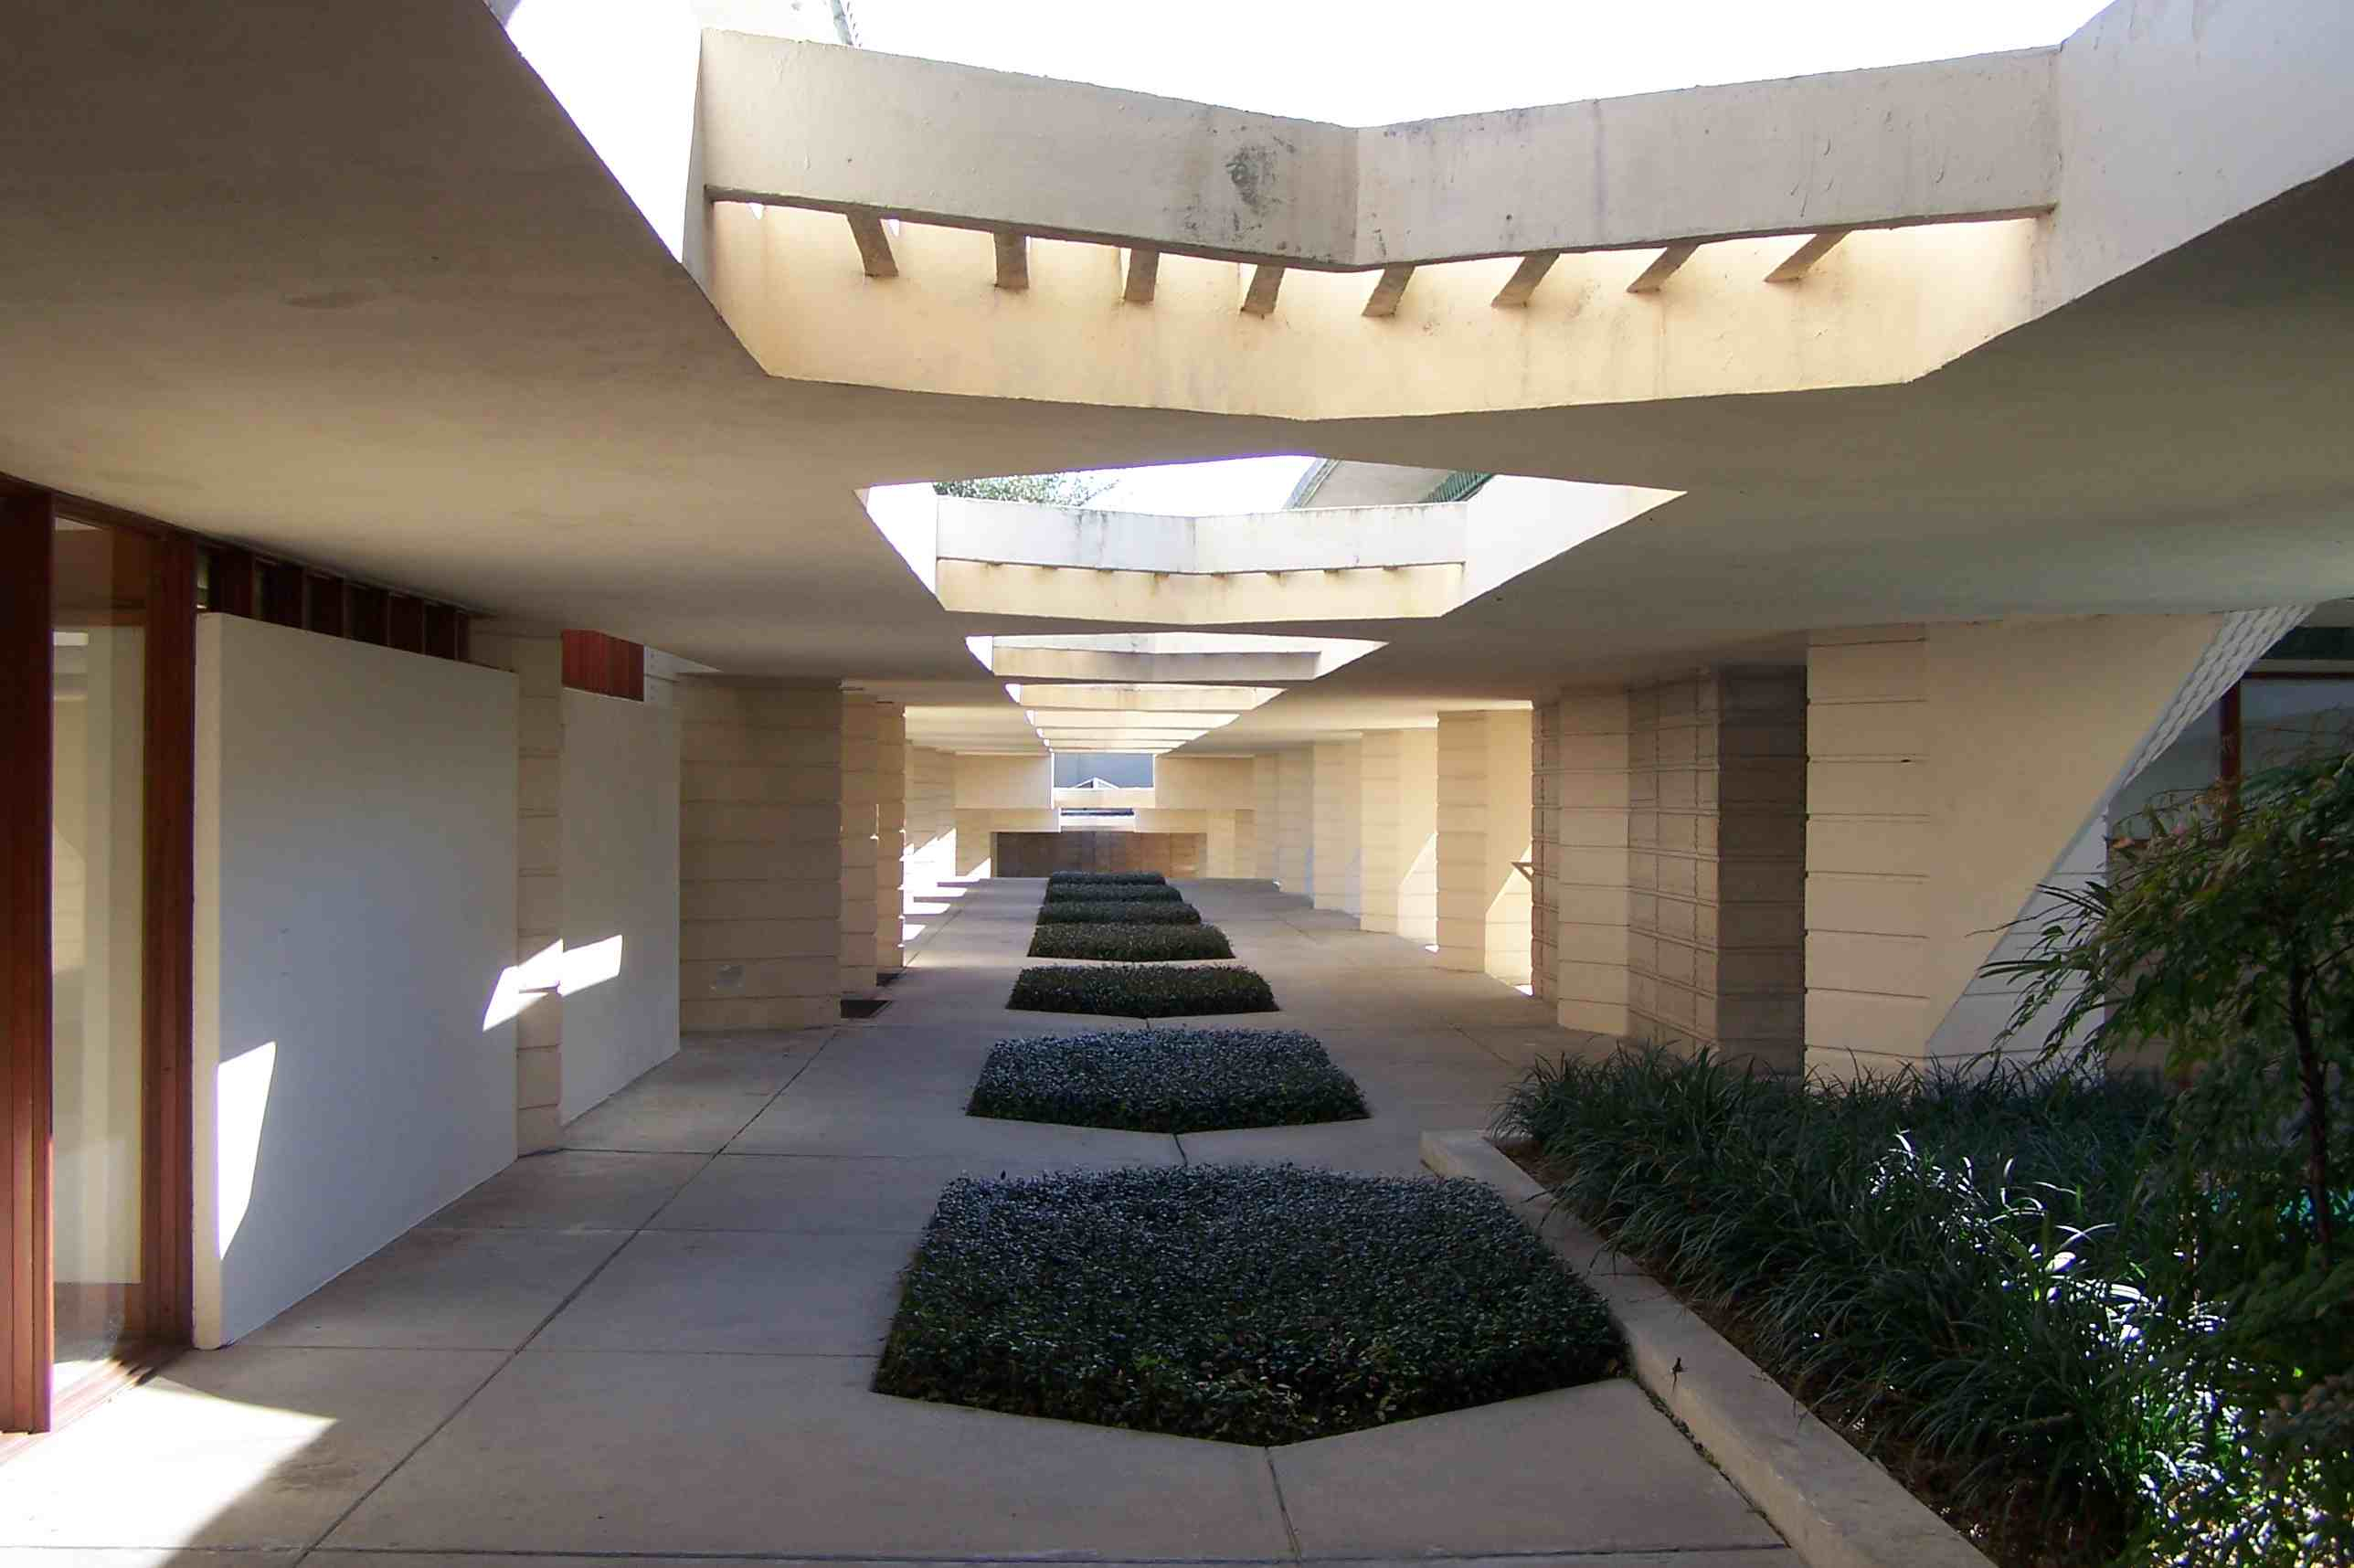 white concrete esplanade, partially covered walkway with vegetation